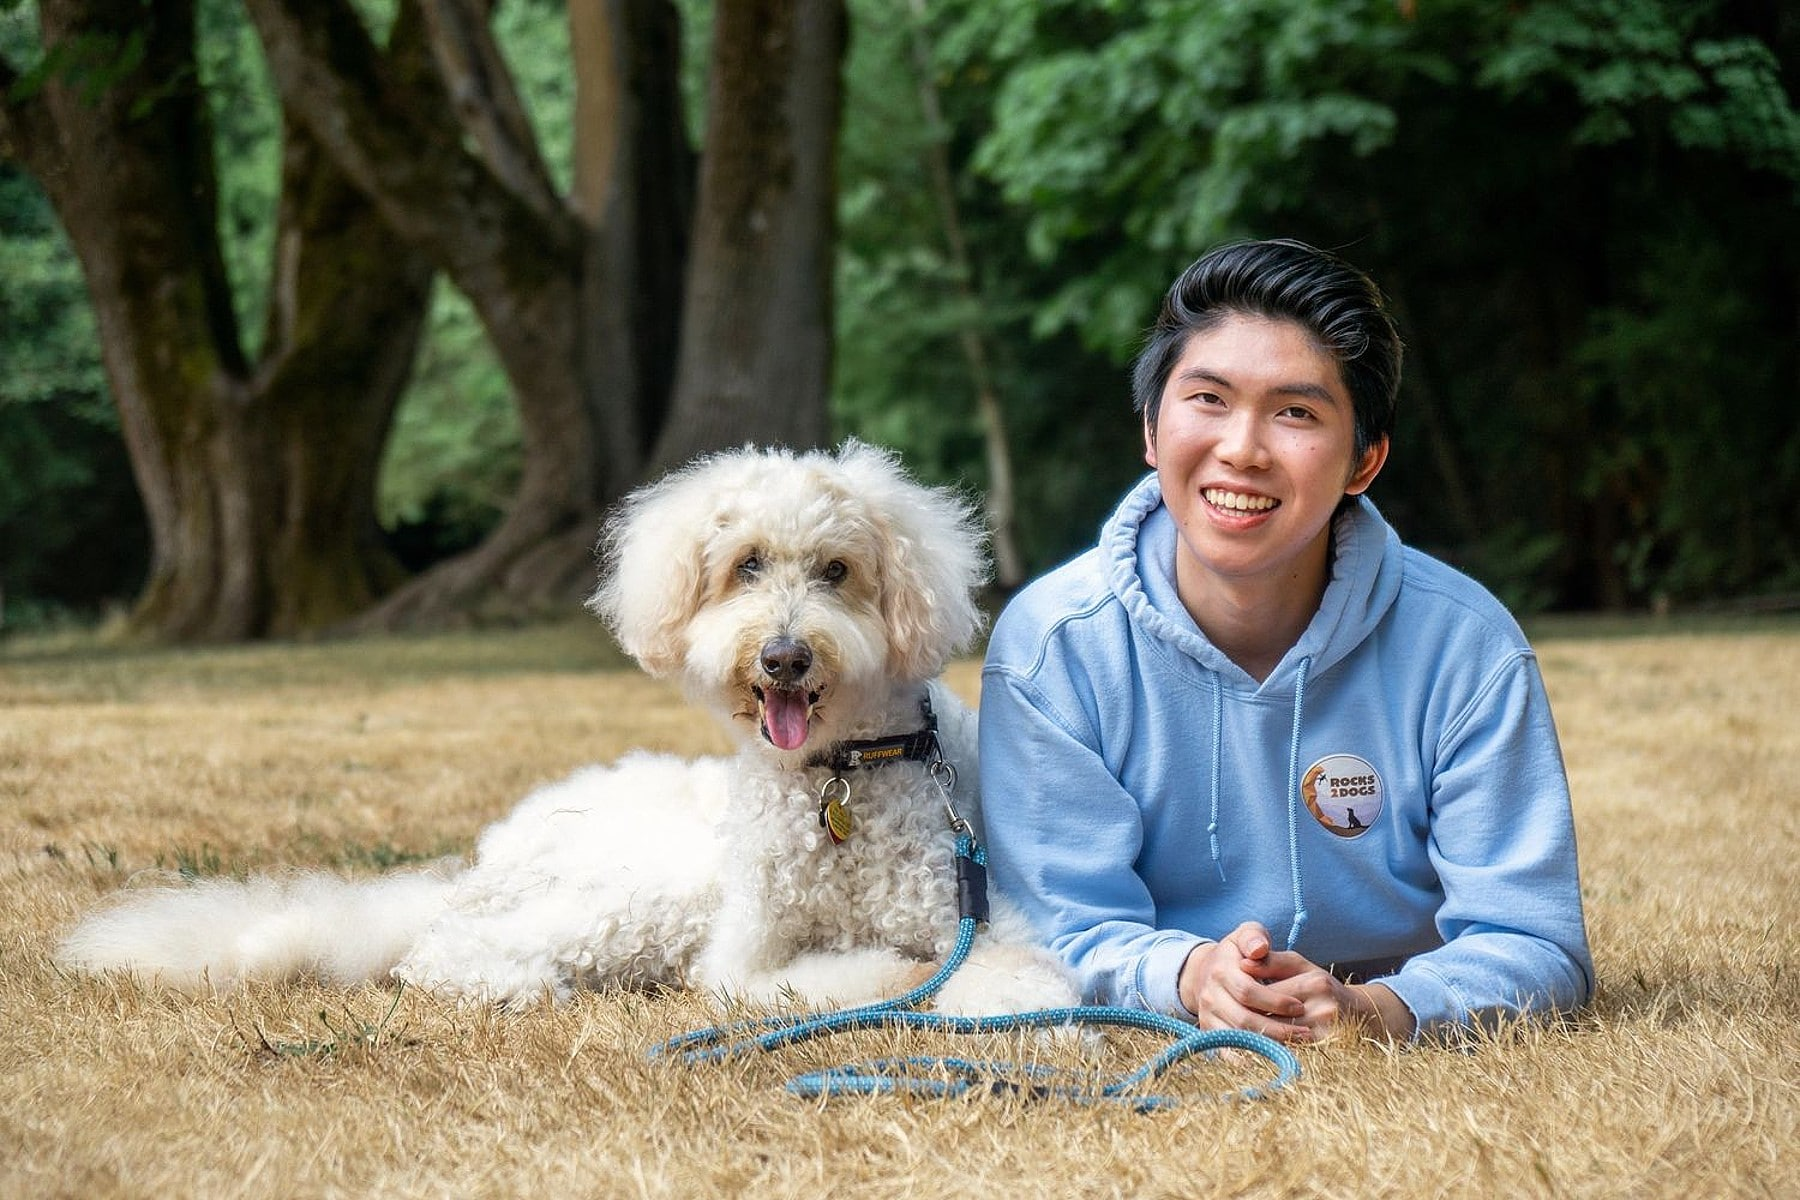 Teen Helps Shelter Dogs by Turning Old Climbing Rope Into Leashes and Donating  Profits